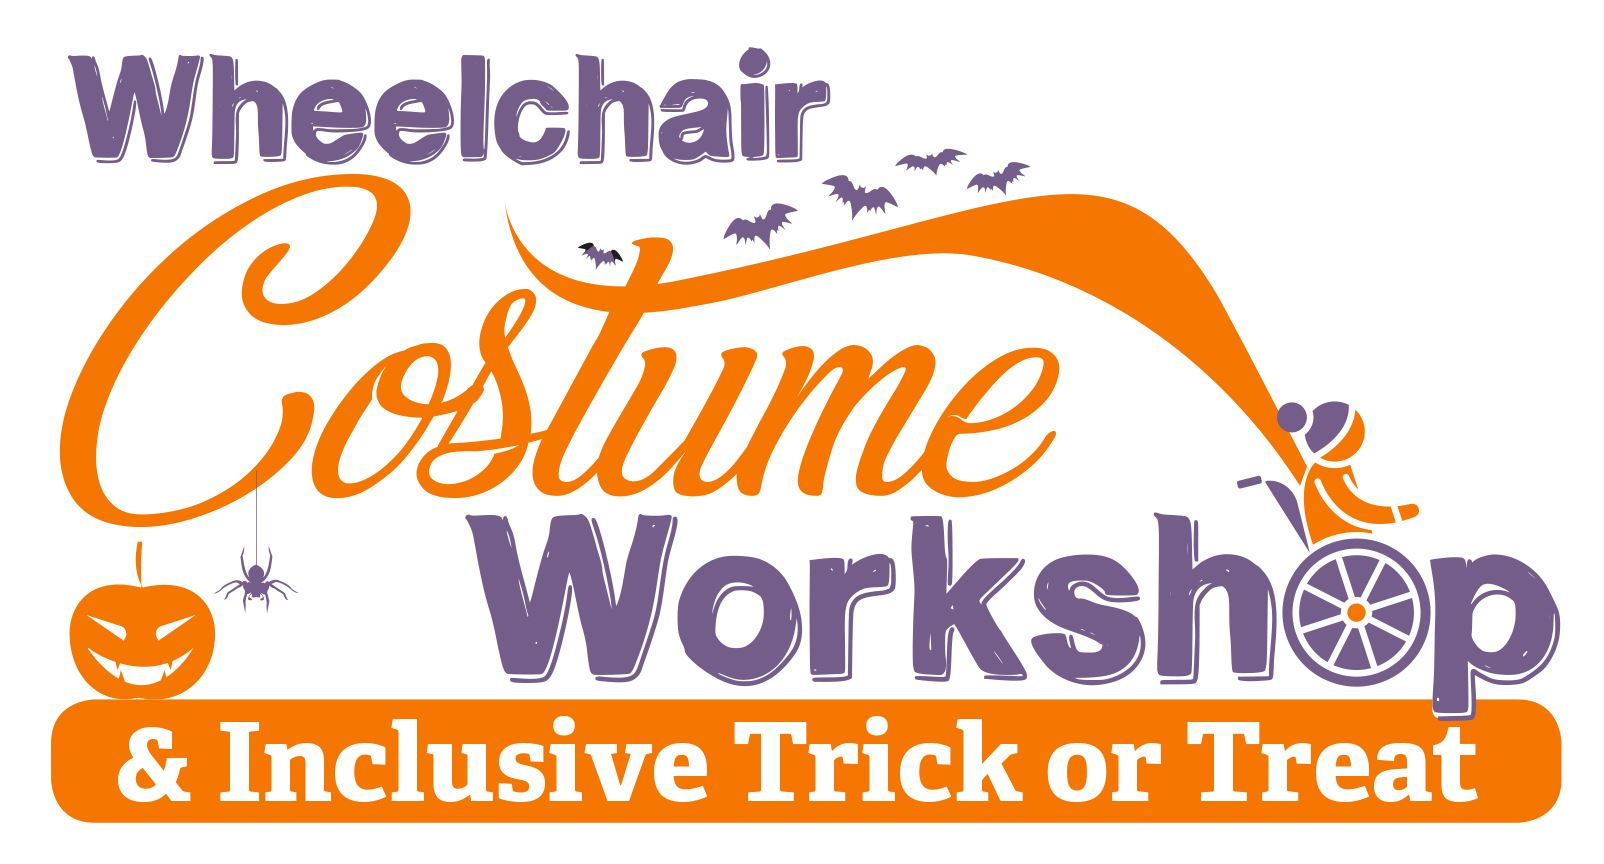 Harford Promotes Inclusive Halloween With 'Wheelchair Costume Workshops'